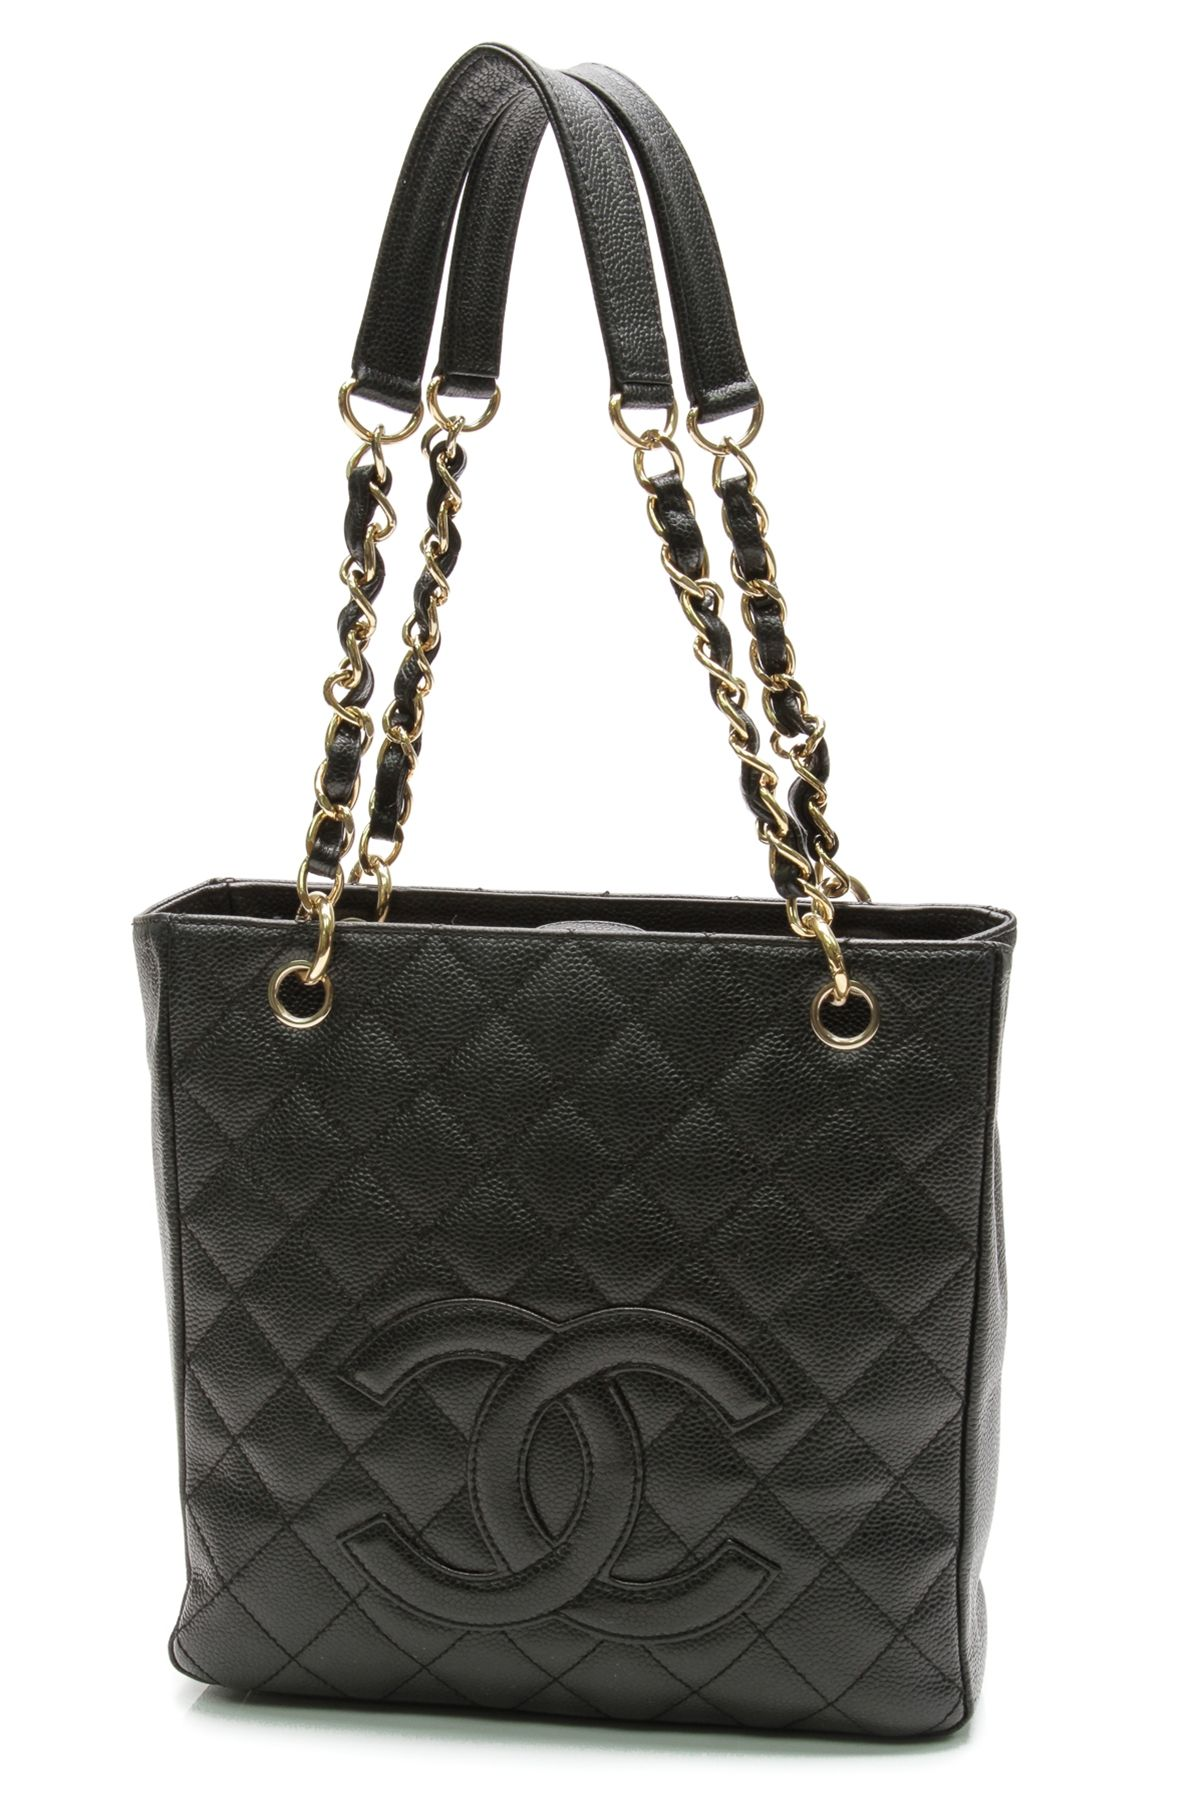 04822154fad4 Chanel Black Quilted Caviar Leather Petite Shopping Tote Bag ...